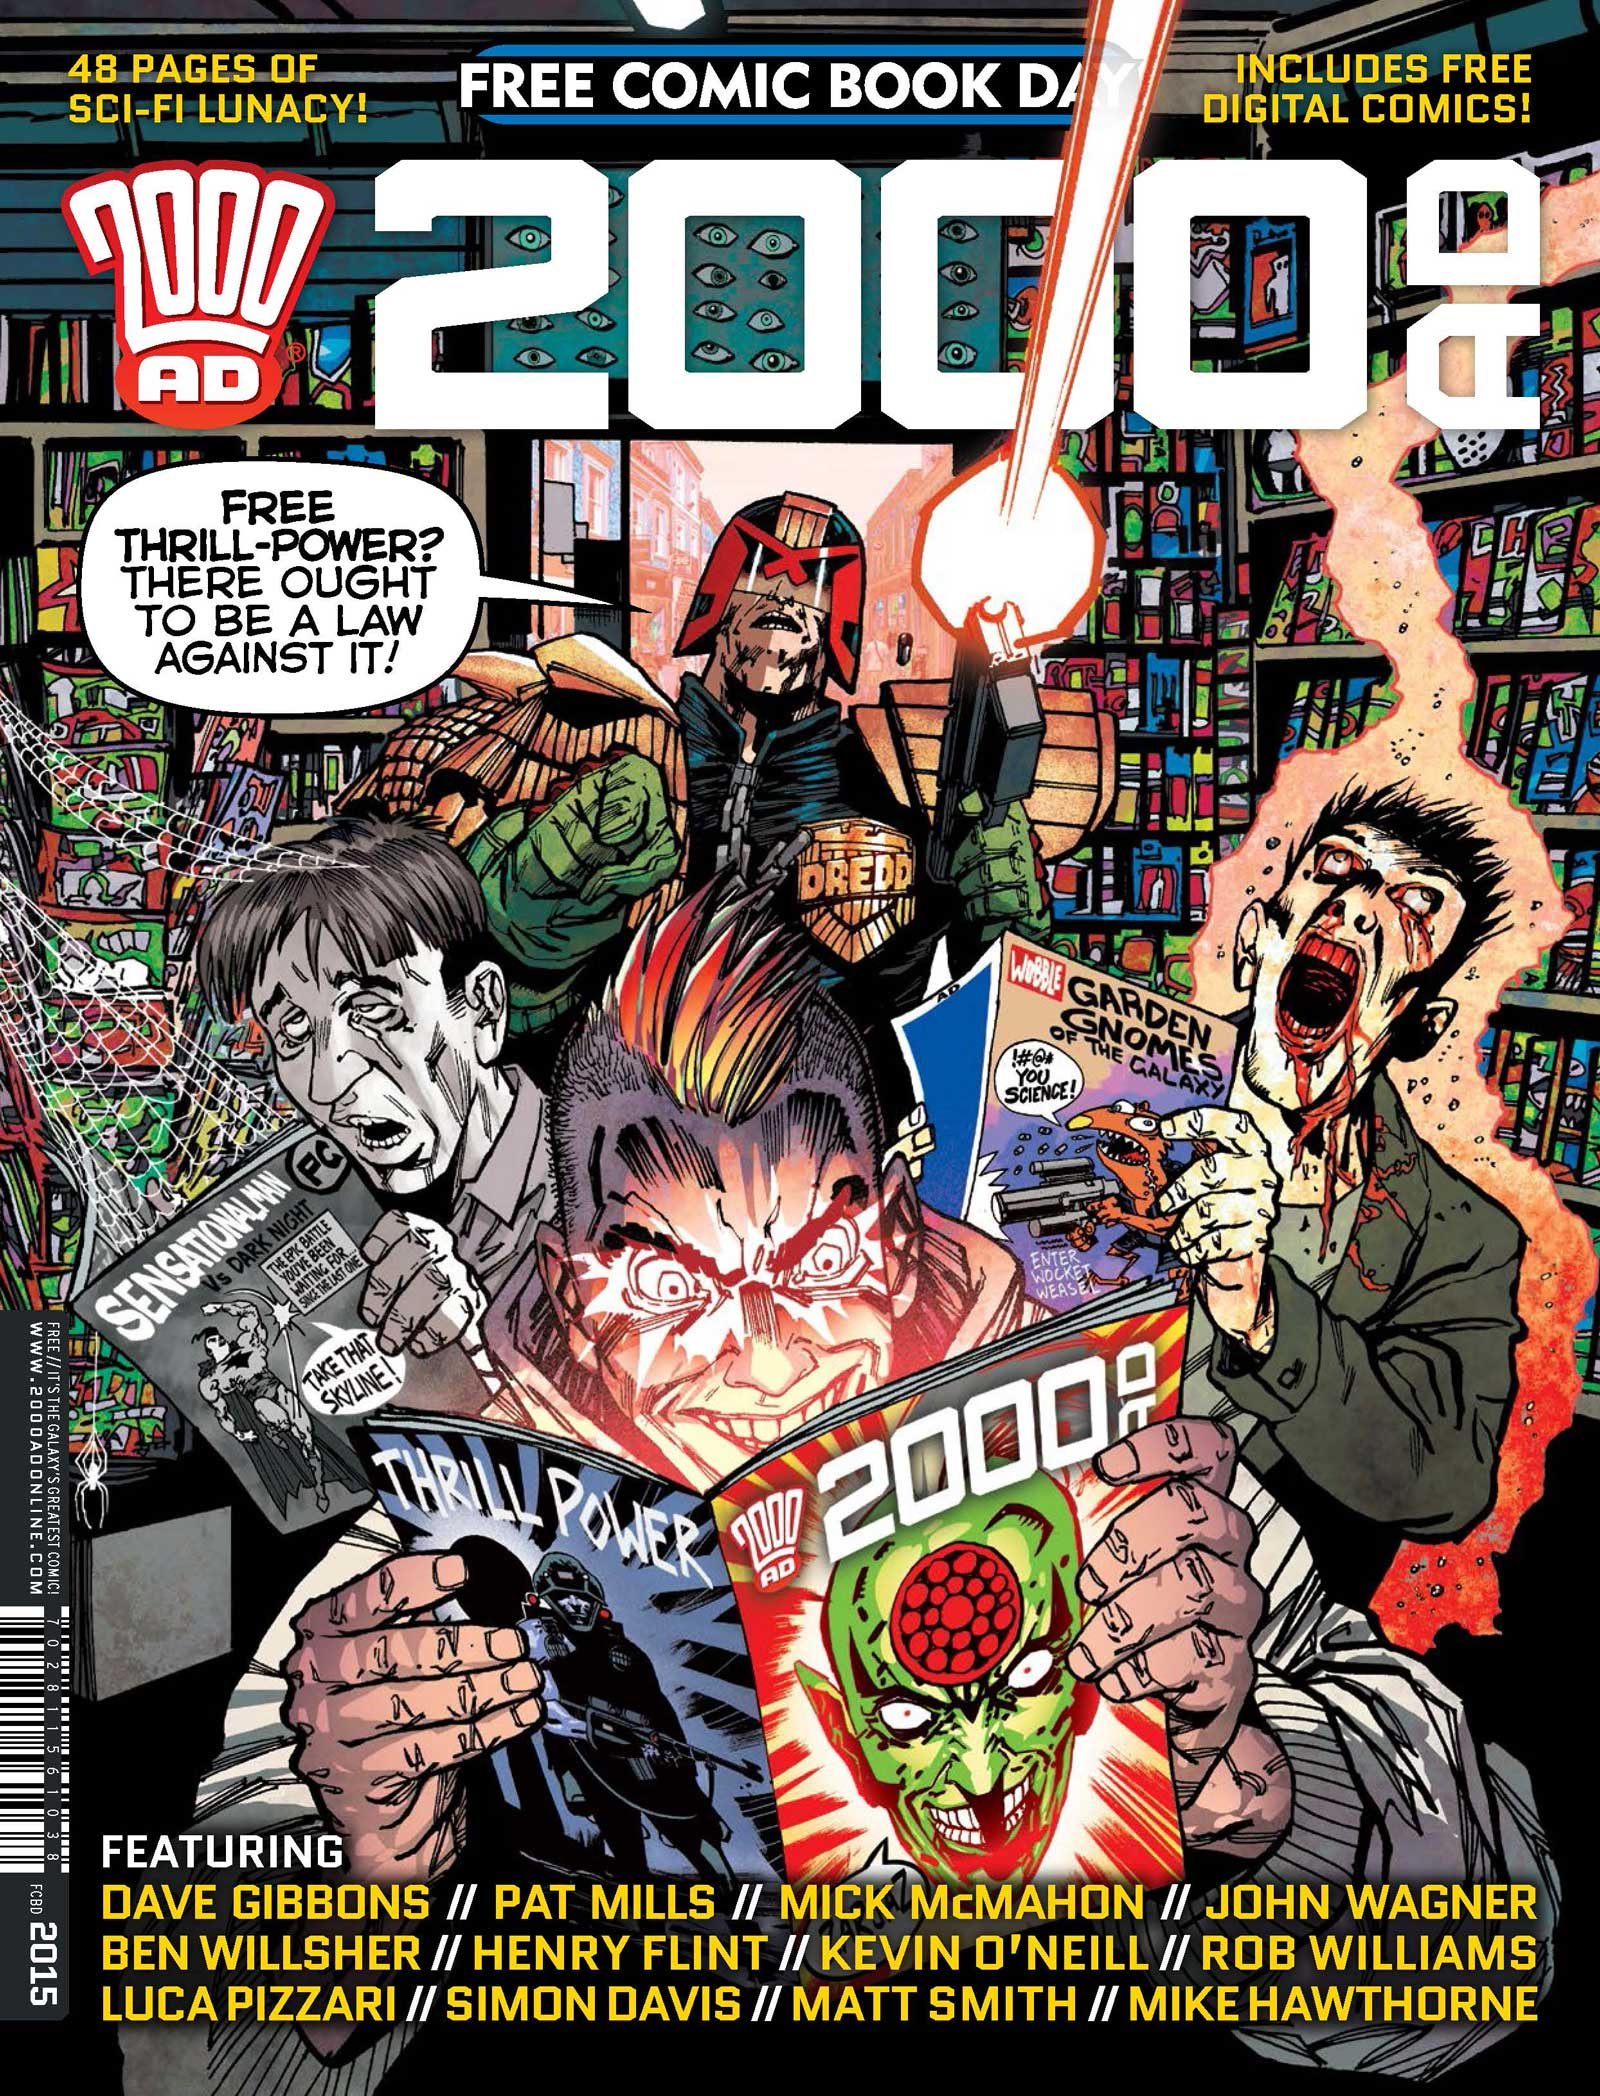 Free Comic Book Day 2015 - 2000AD